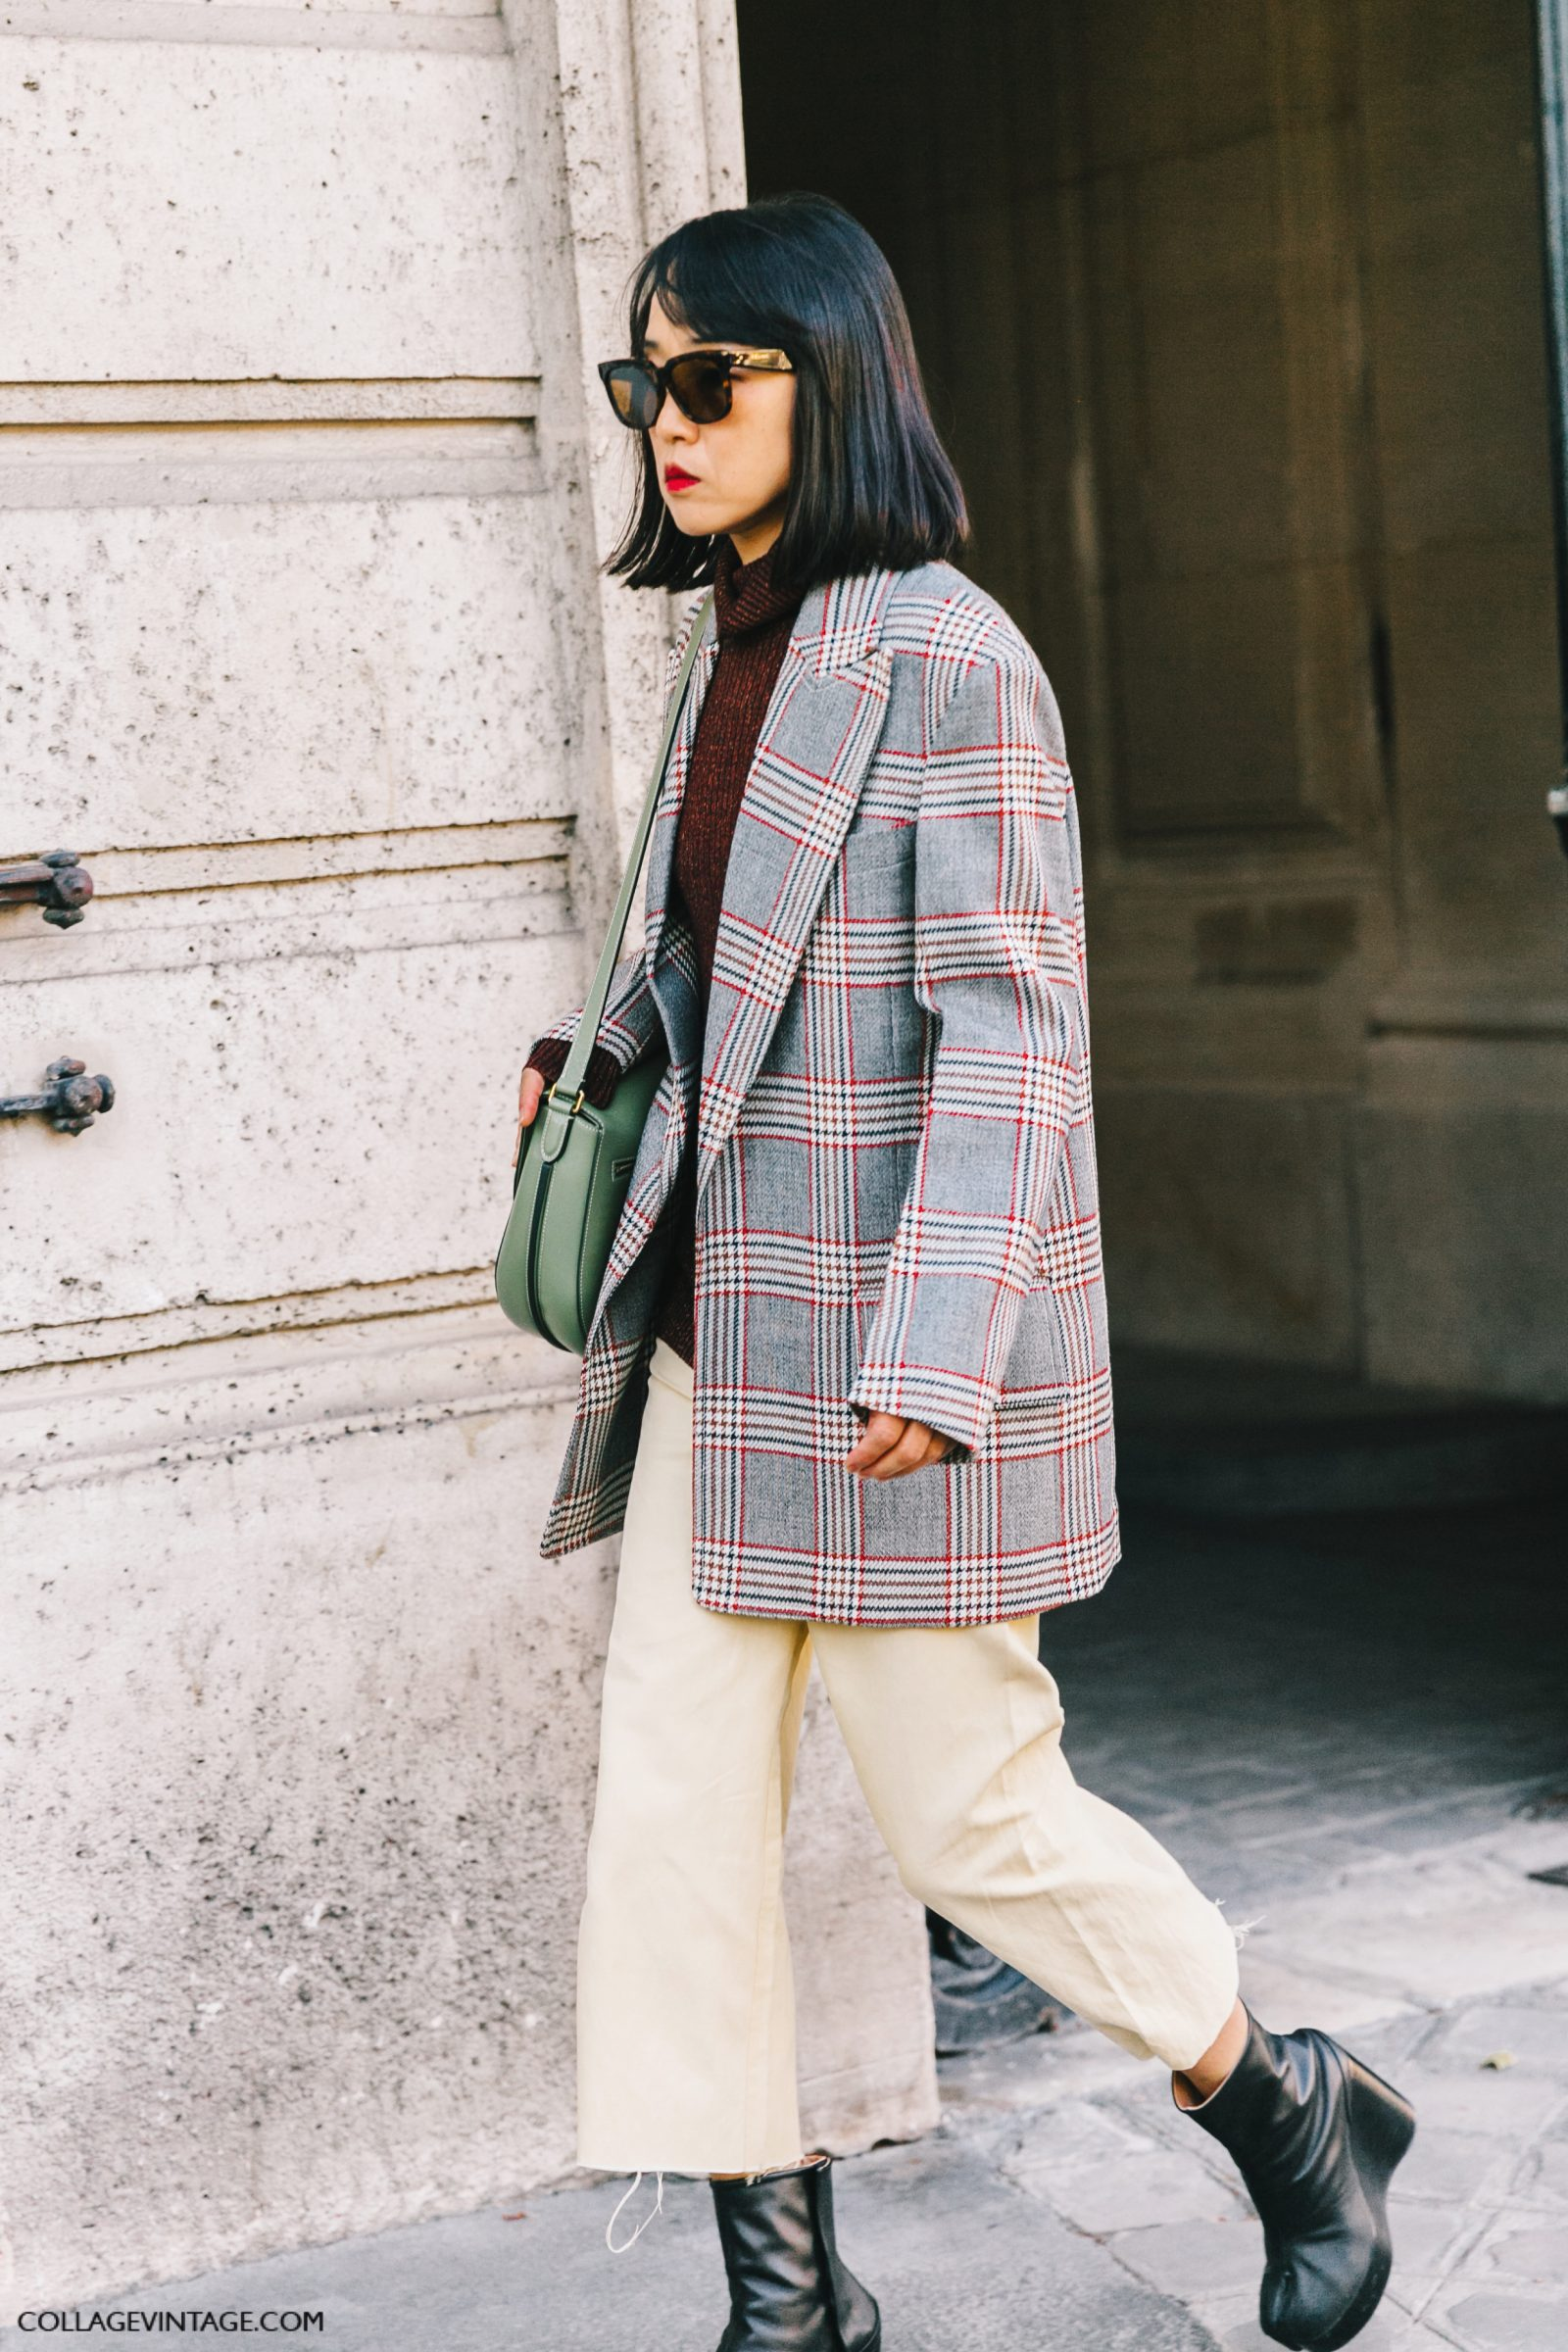 pfw-paris_fashion_week_ss17-street_style-outfits-collage_vintage-olympia_letan-hermes-stella_mccartney-sacai-48